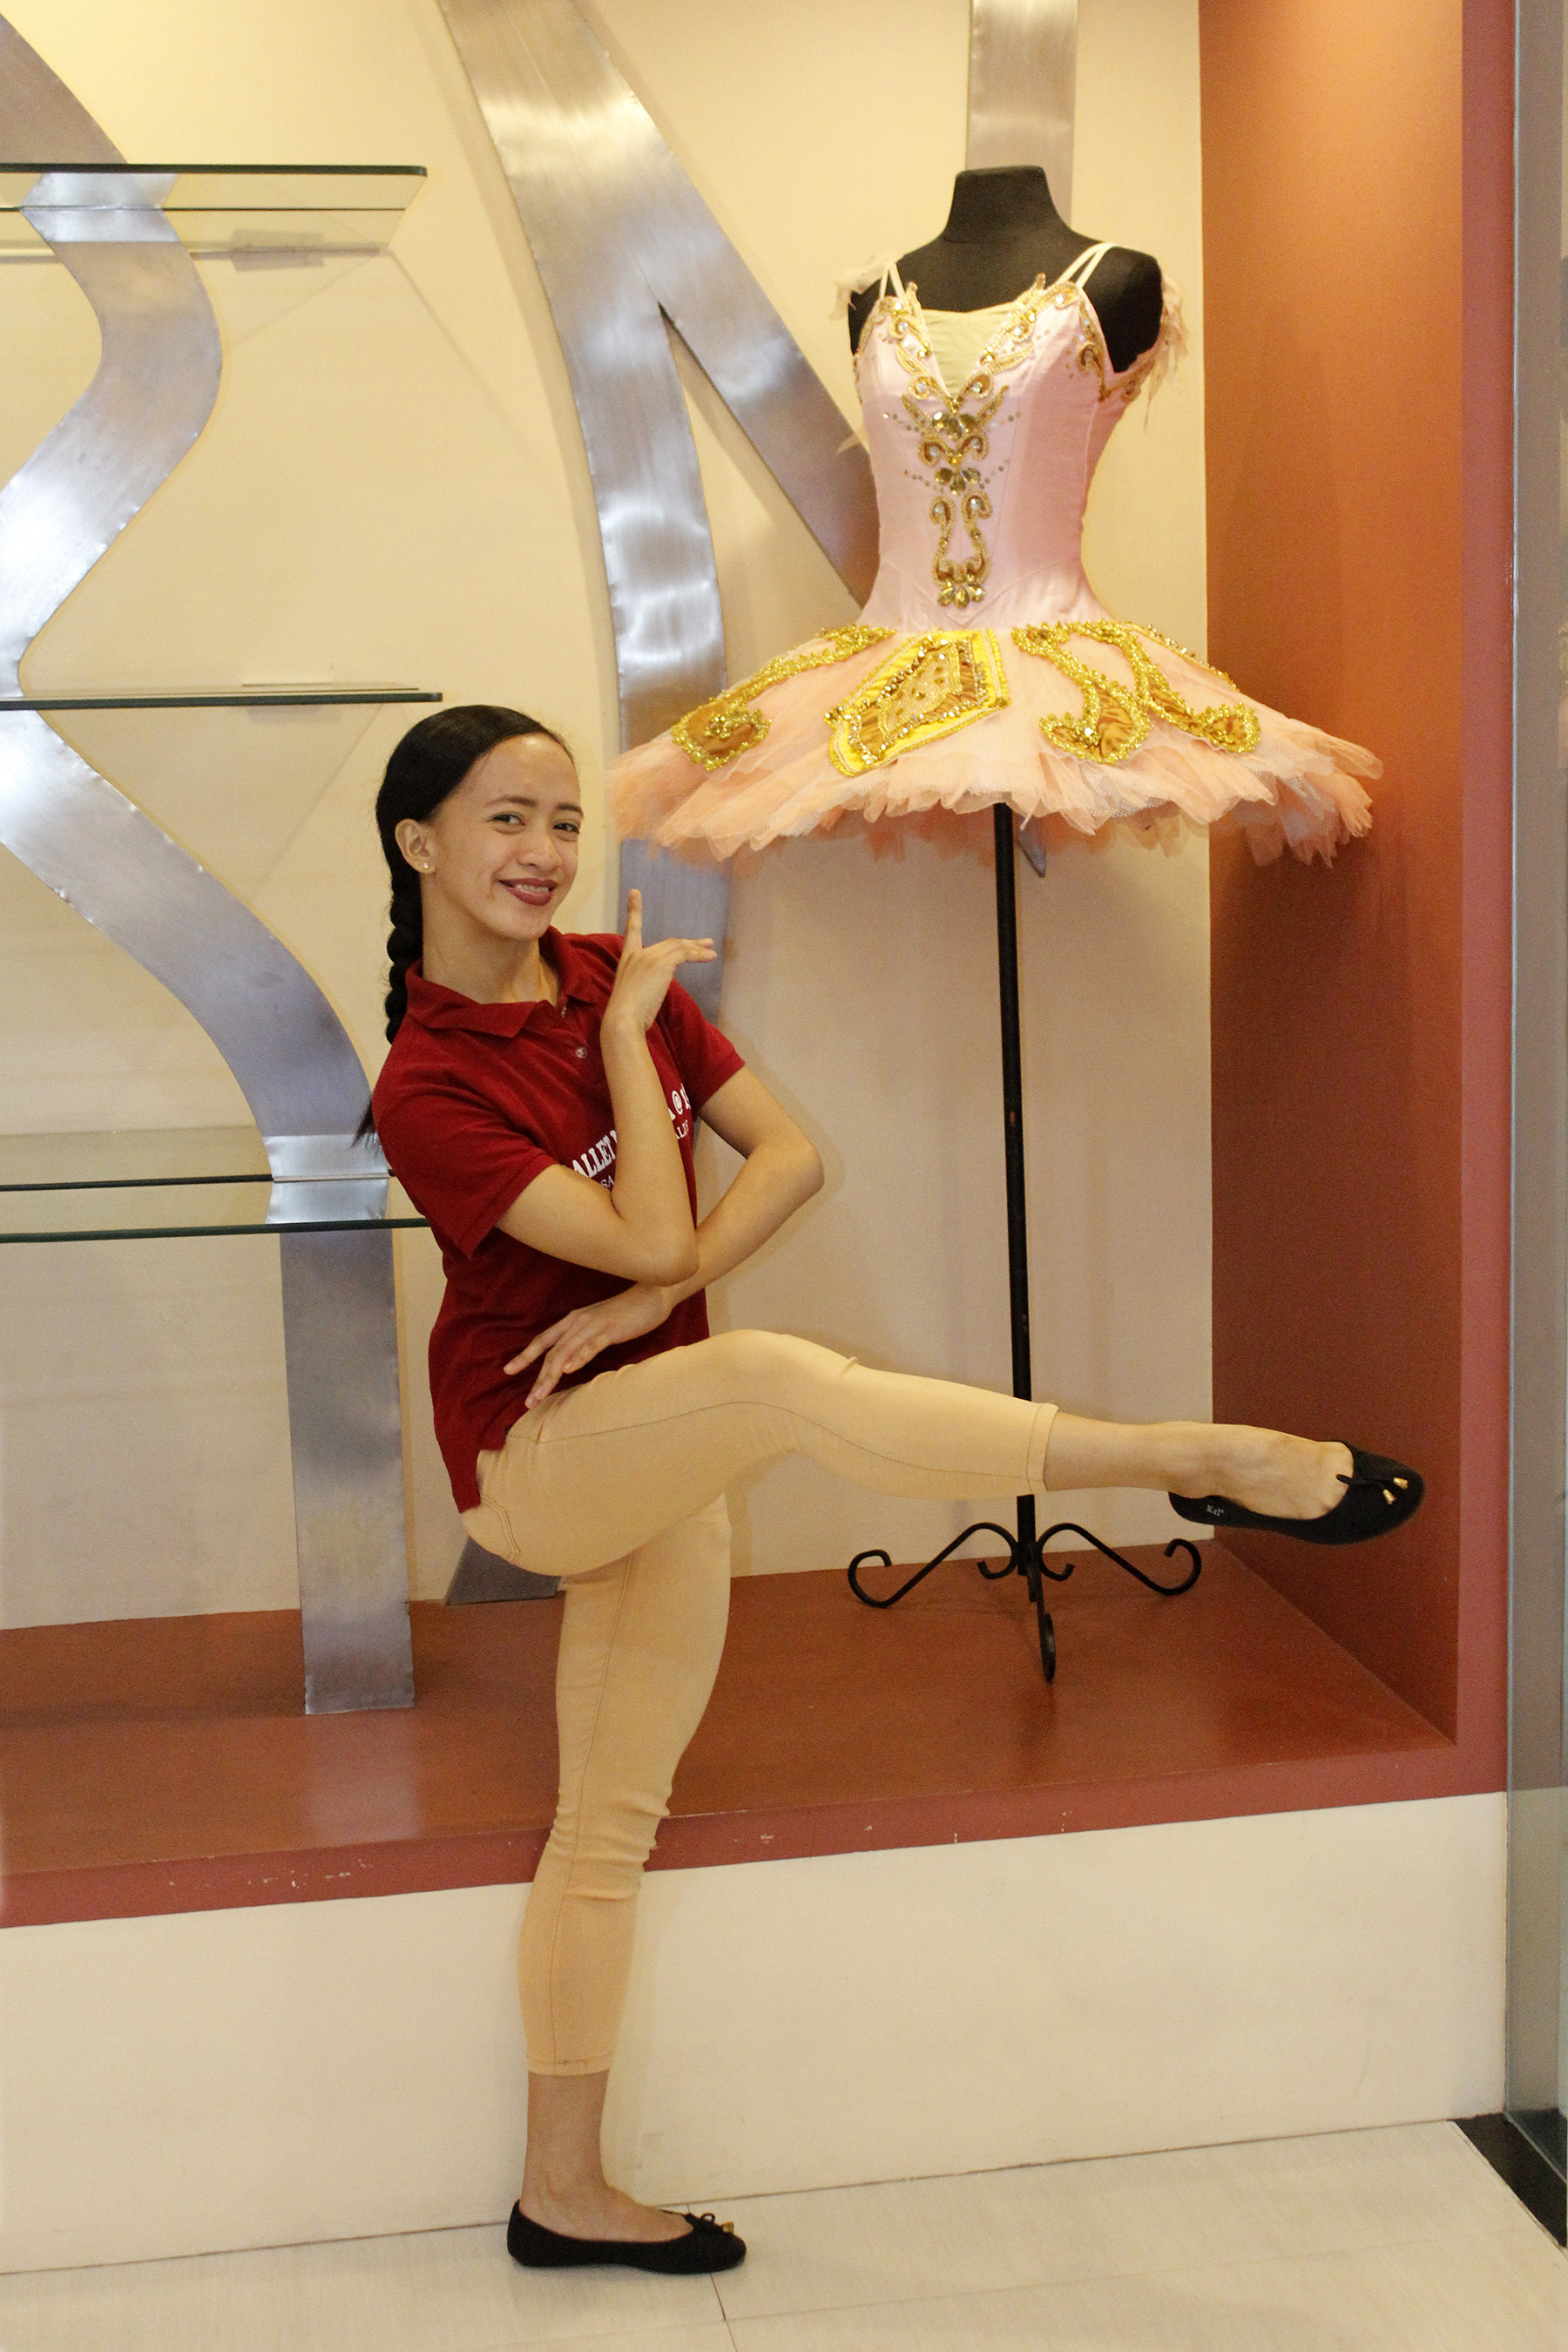 A former scavenger in Tondo, Jessa Balote's life changed when she became a scholar of Ballet Manila's Project Ballet Futures in 2008. Photo by Jimmy Villanueva